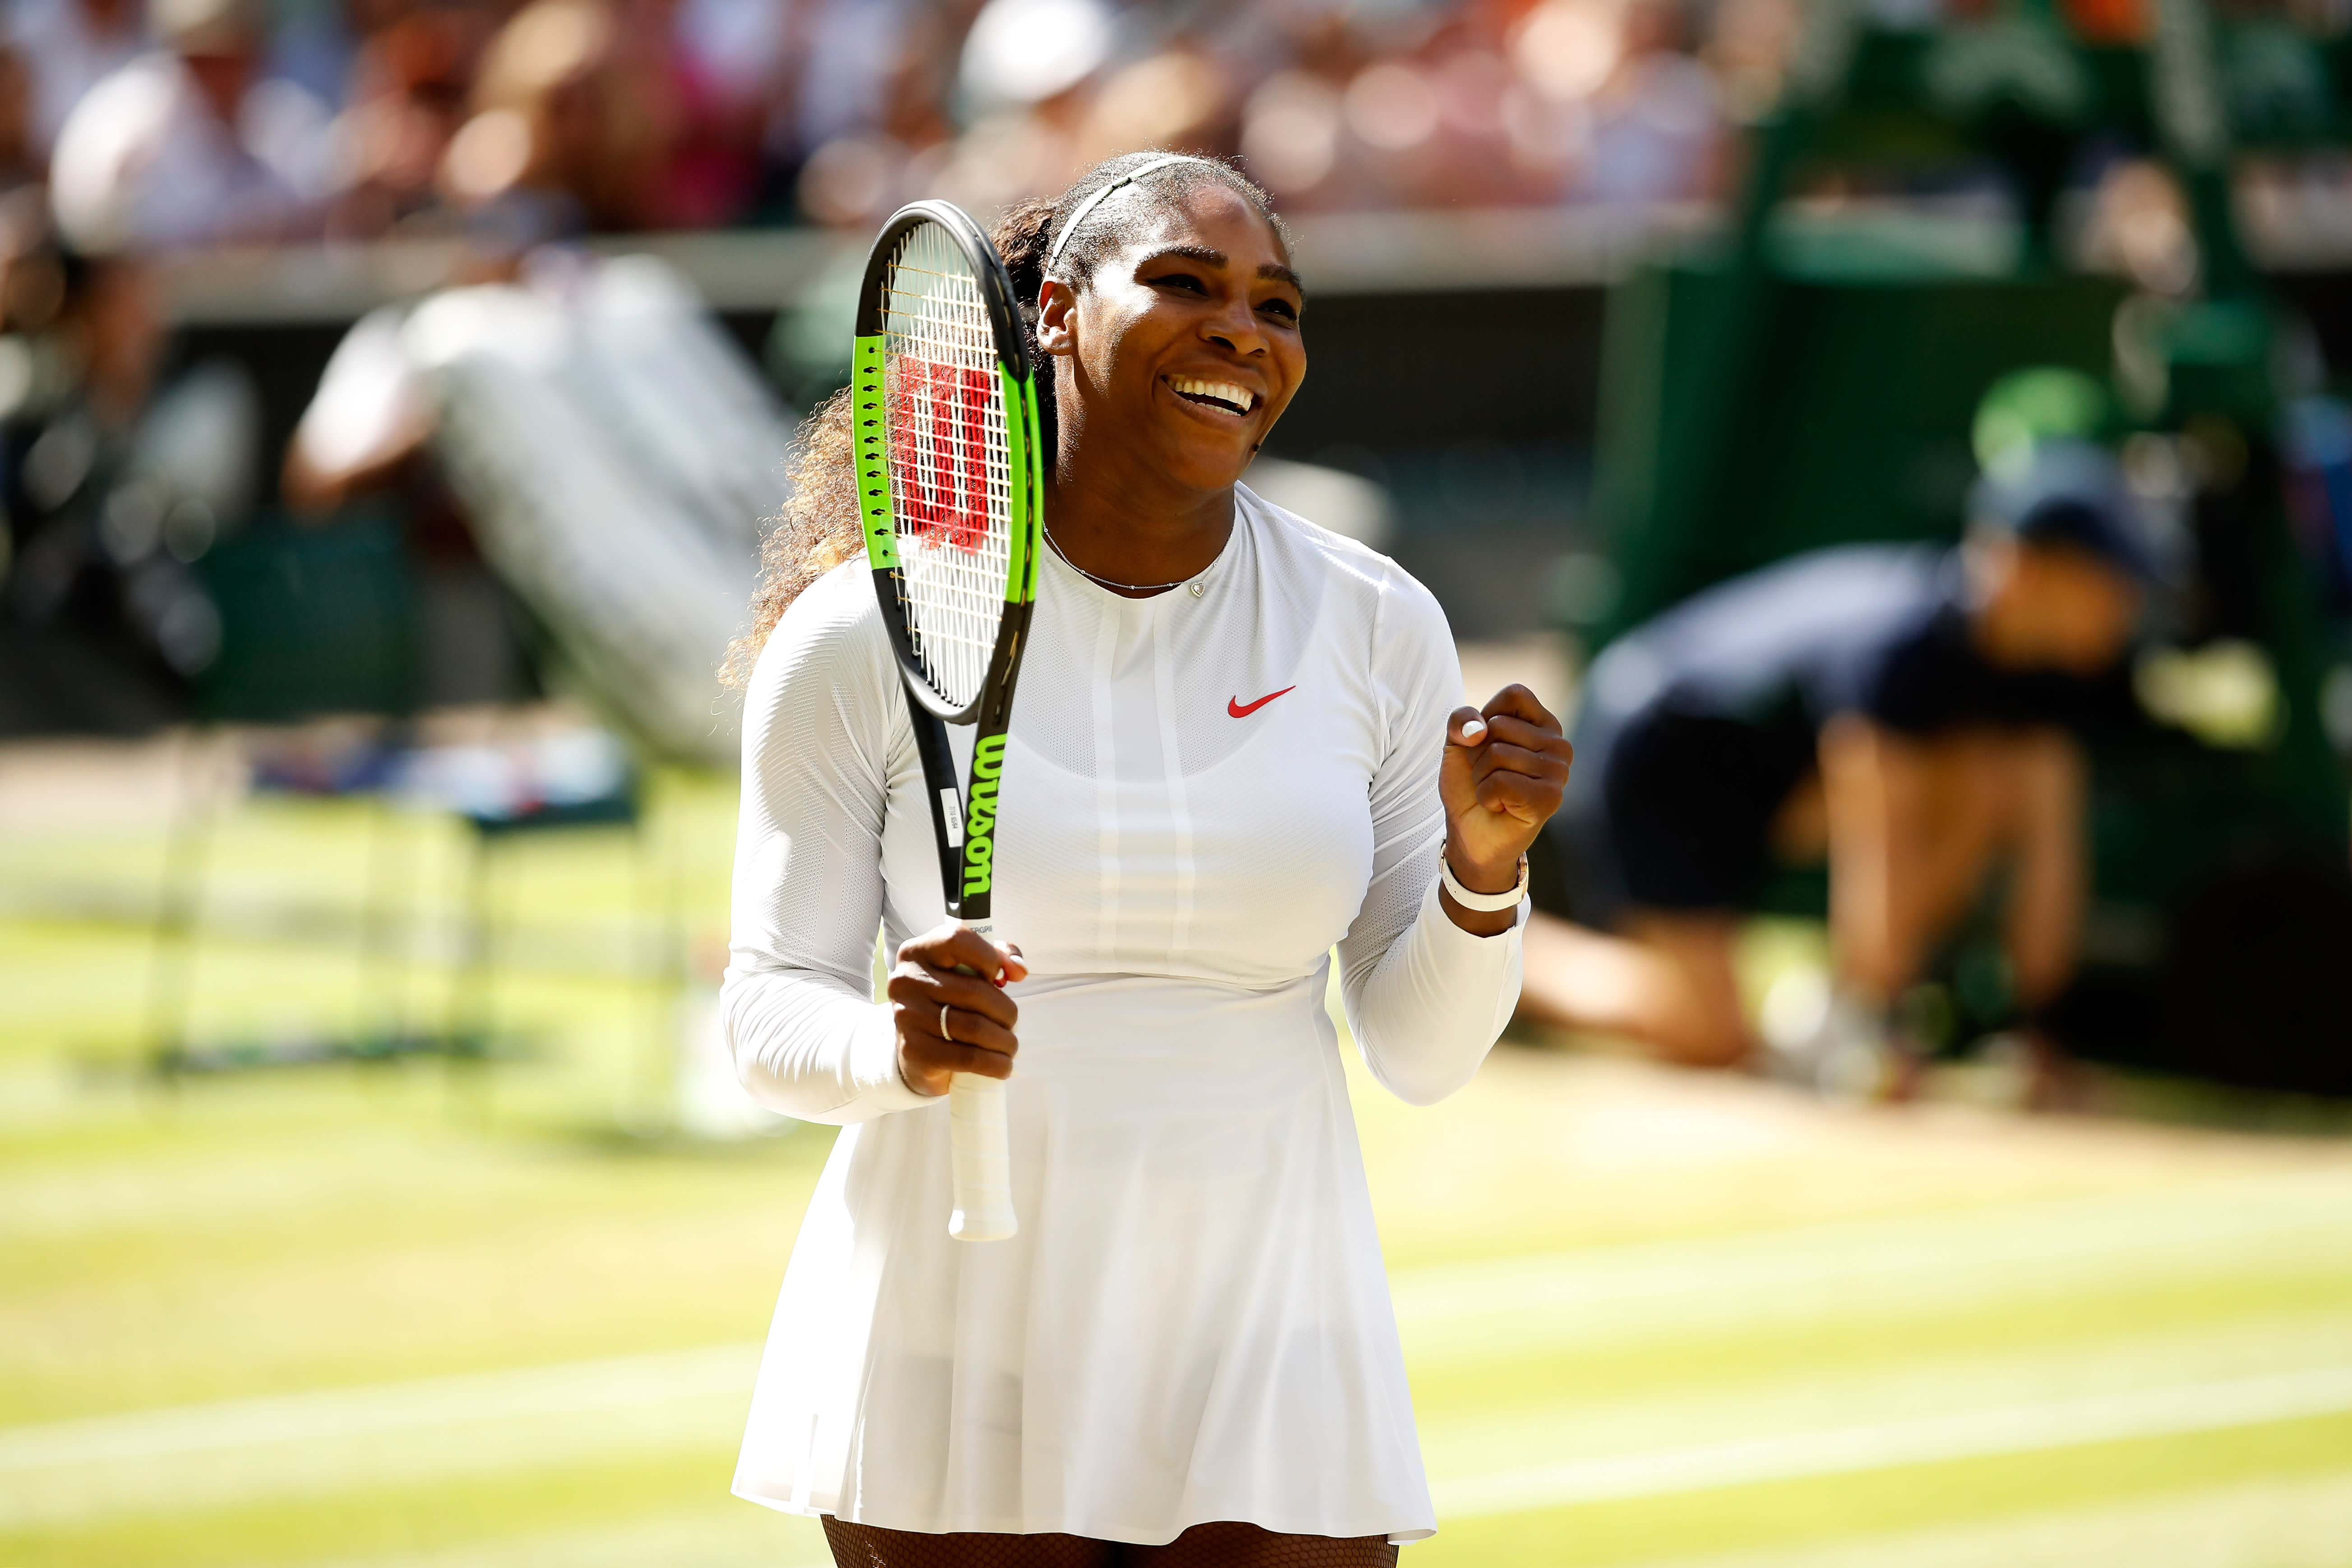 Serena Williams returns to Forbes' list of the highest-paid